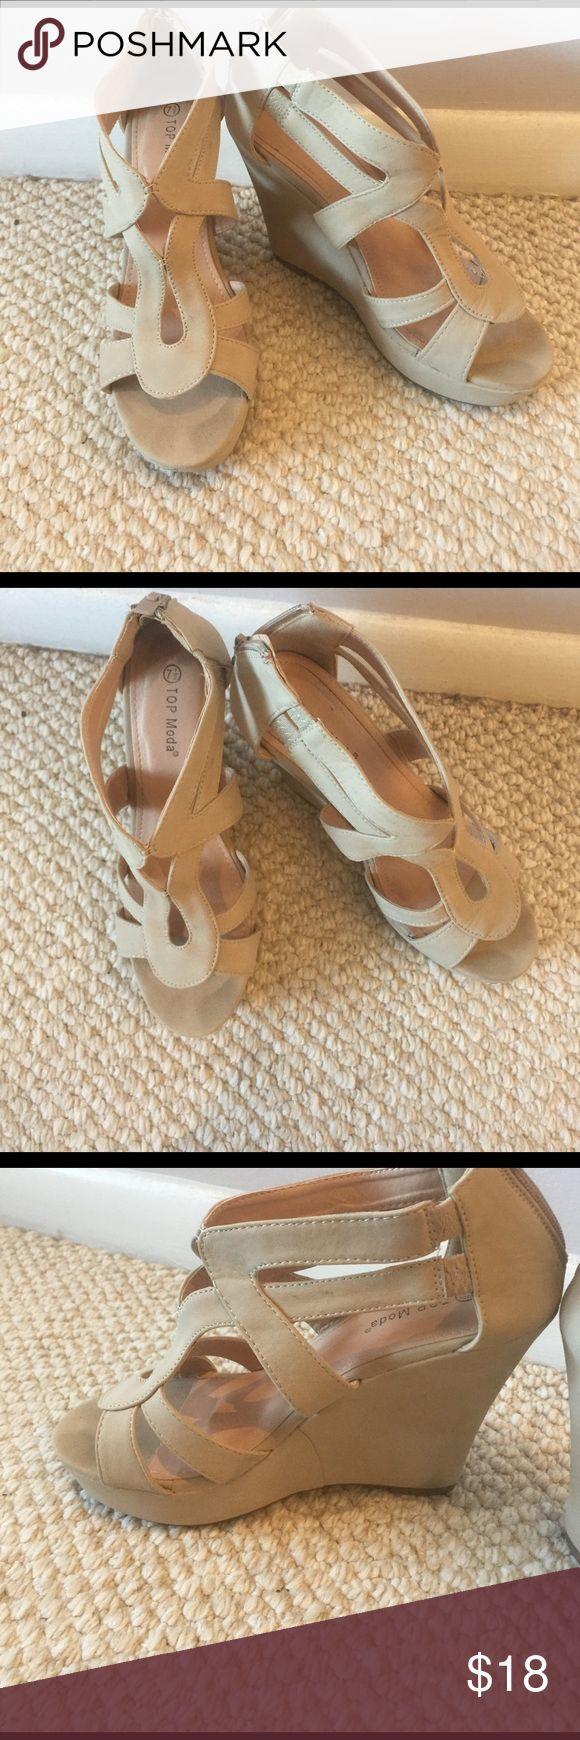 Nude/Cream wedges size 7.5 Size 7.5 Top Moda Wedges, only worn one time as a bridesmaid at a wedding. Super cute! Top Moda Shoes Wedges